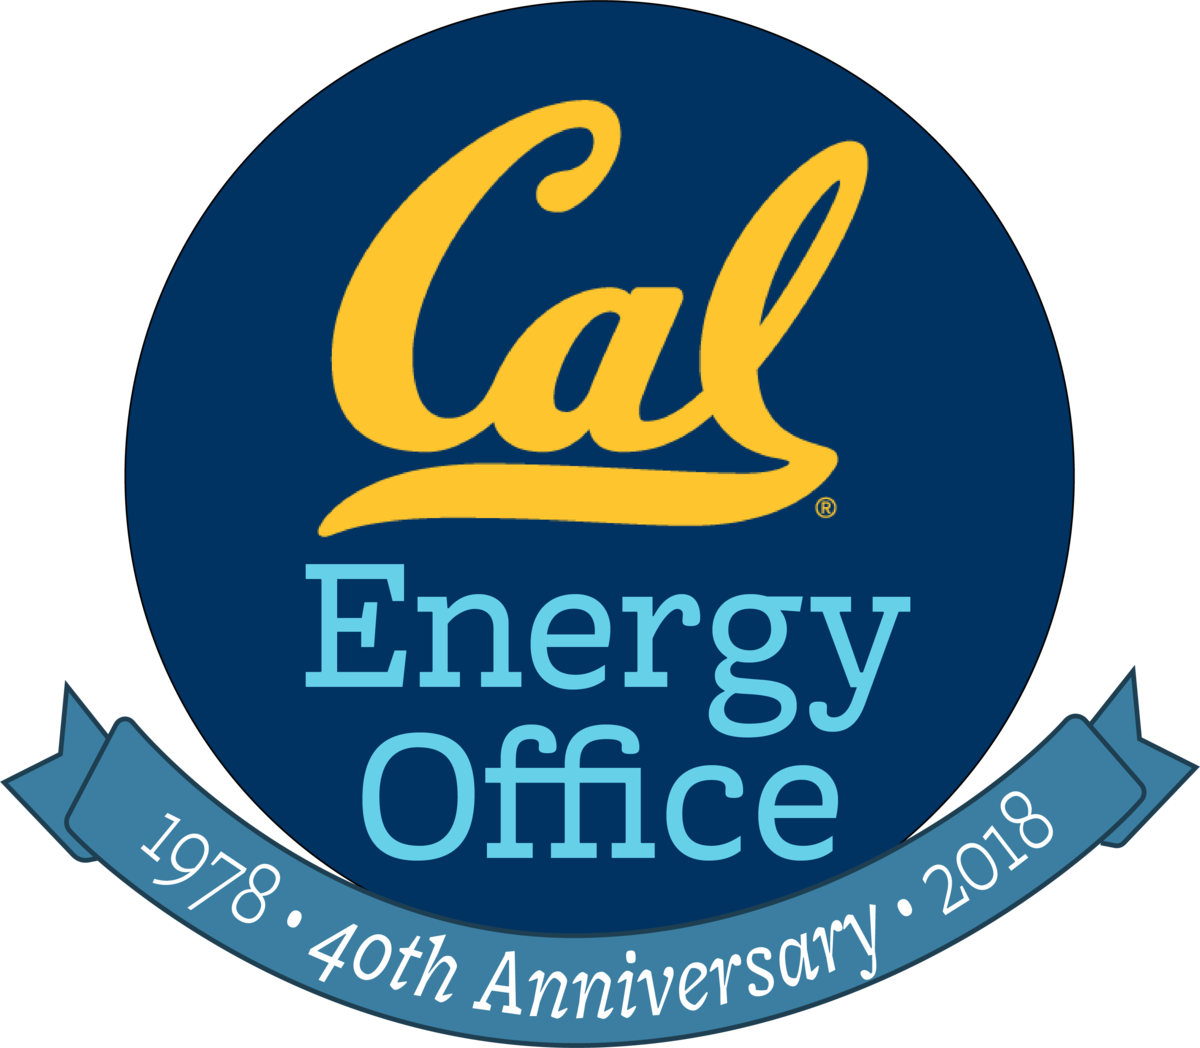 Energy Office Logo - 40th Anniversary